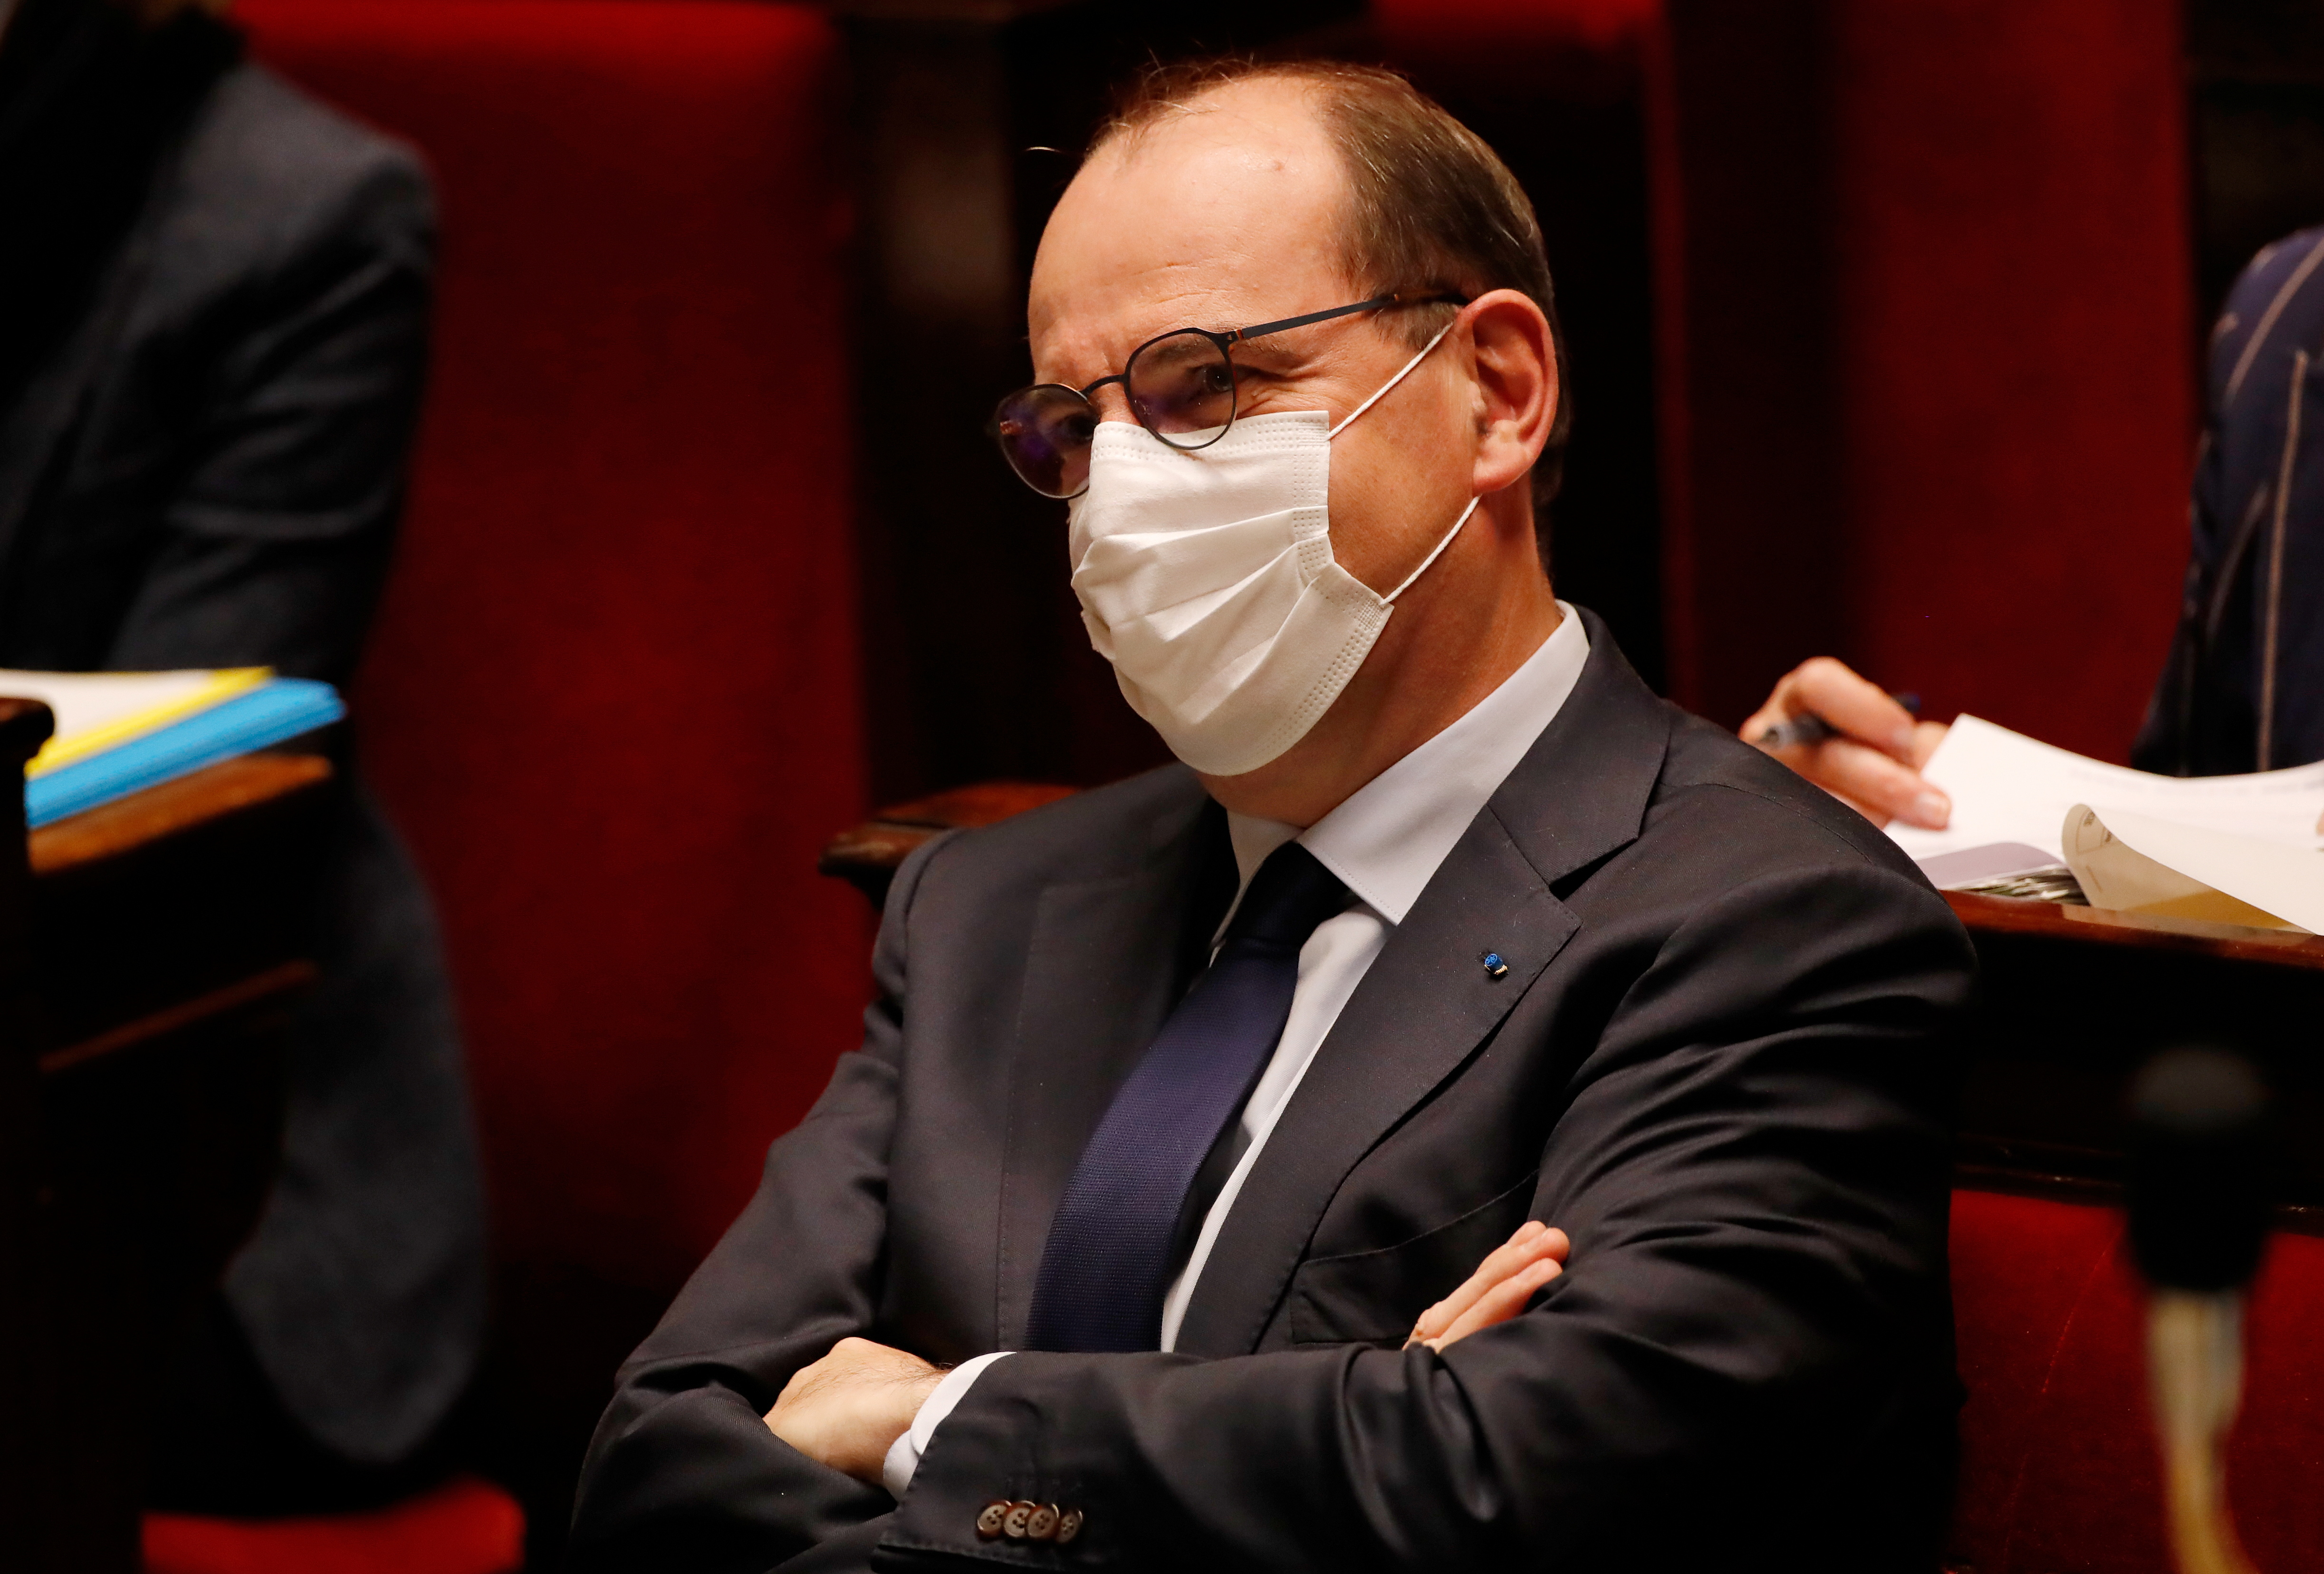 French Prime Minister Jean Castex, wearing a protective face mask, attends the questions to the government session before a final vote on controversial climate change bill at the National Assembly in Paris, France, May 4, 2021. REUTERS/Sarah Meyssonnier